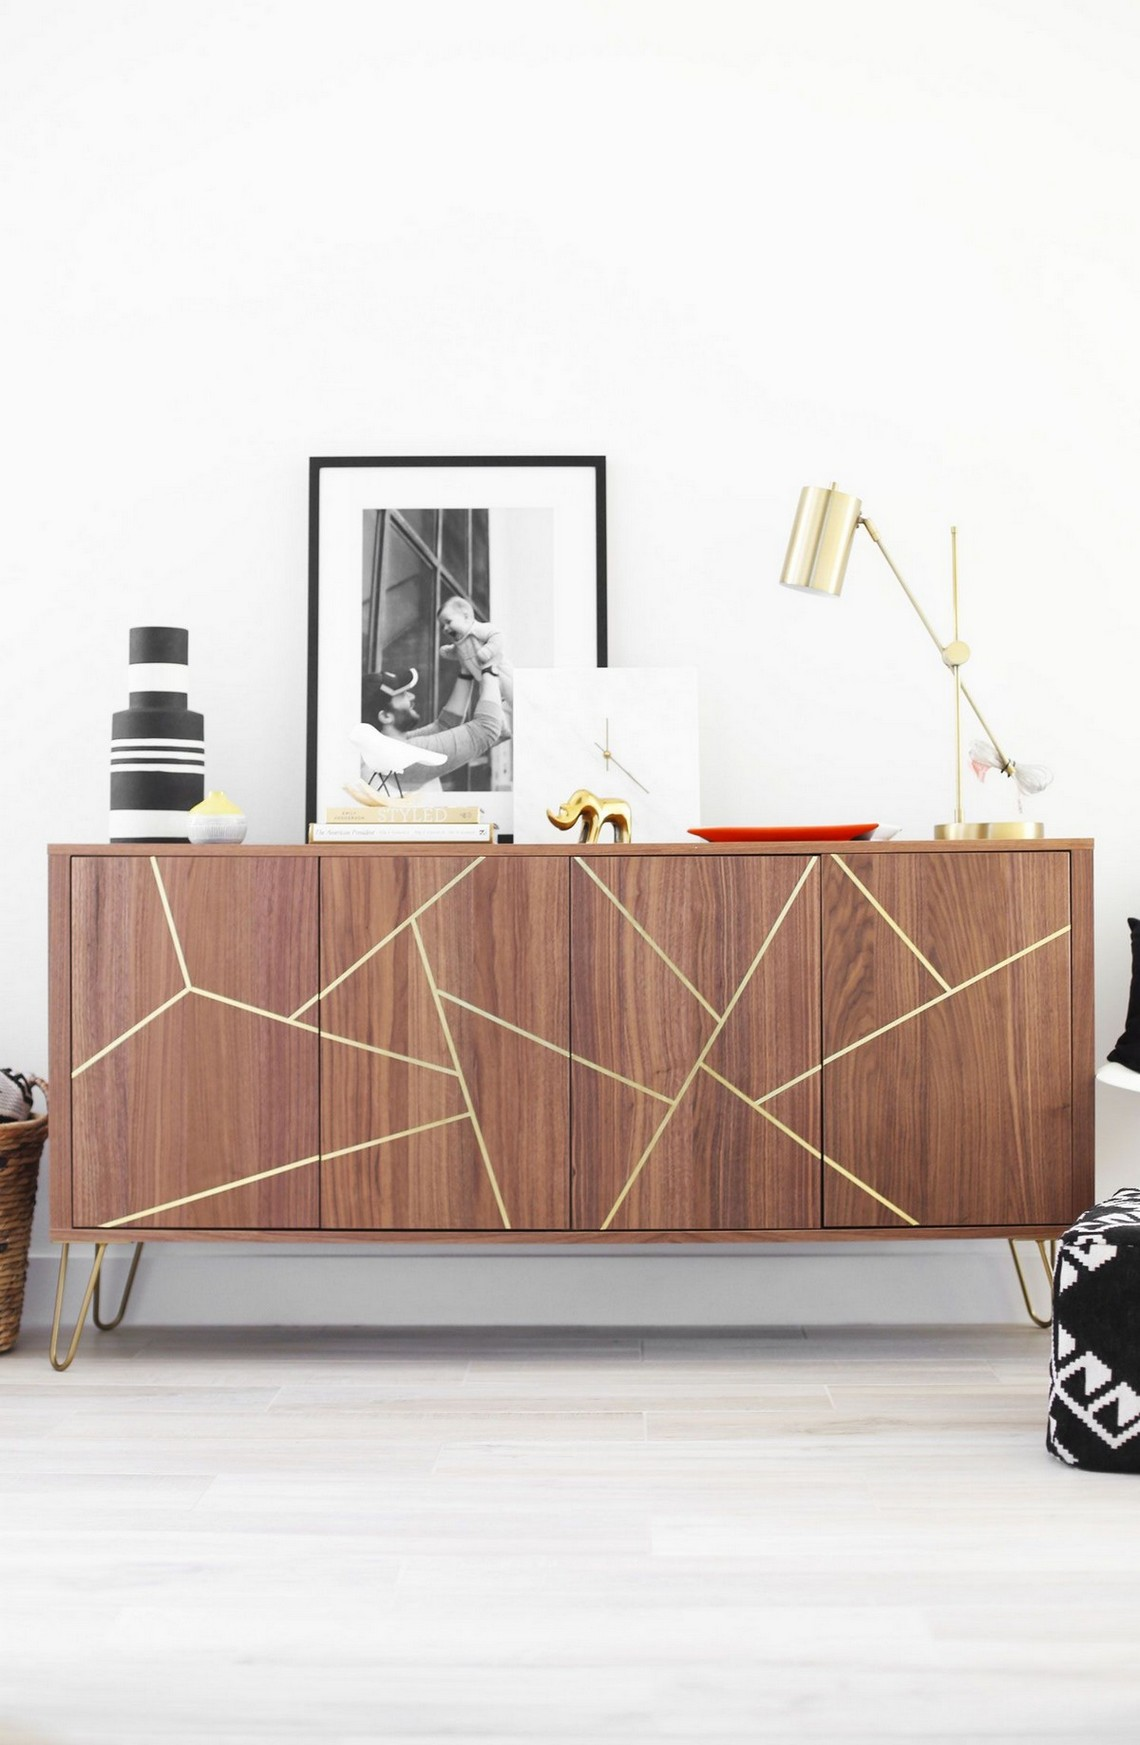 Sideboard Ideas You Can Find On Pinterest sideboard ideas Sideboard Ideas You Can Find On Pinterest 4